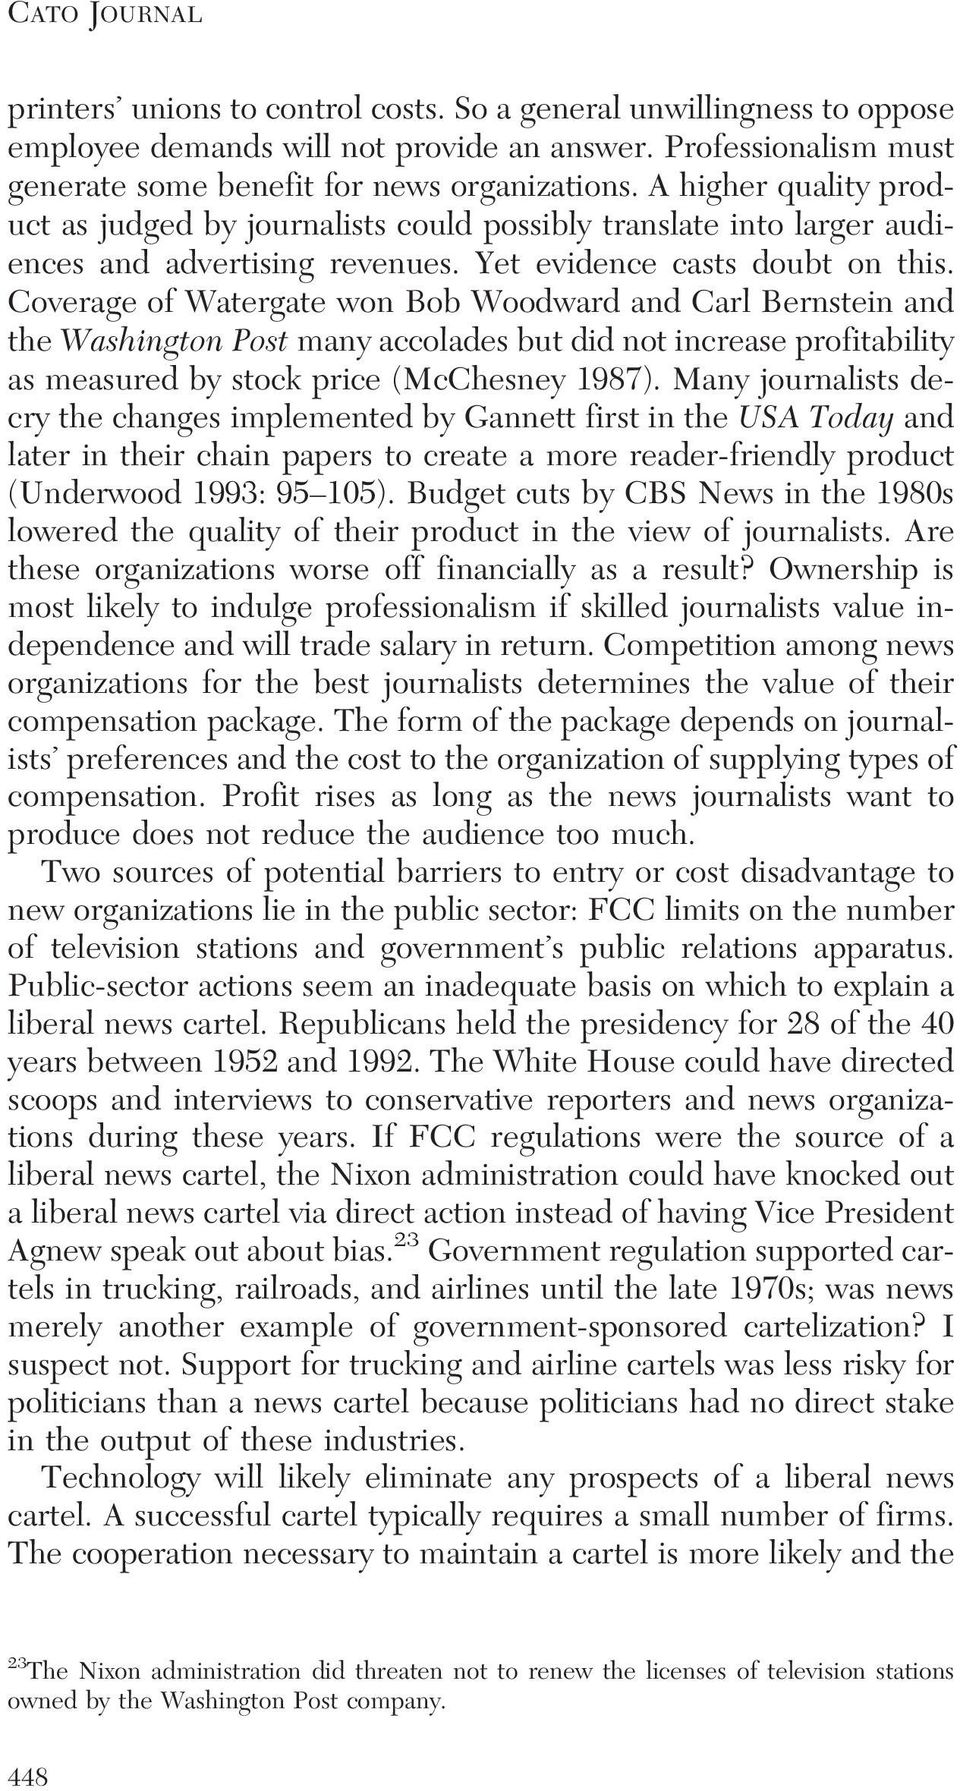 Coverage of Watergate won Bob Woodward and Carl Bernstein and the Washington Post many accolades but did not increase profitability as measured by stock price (McChesney 1987).